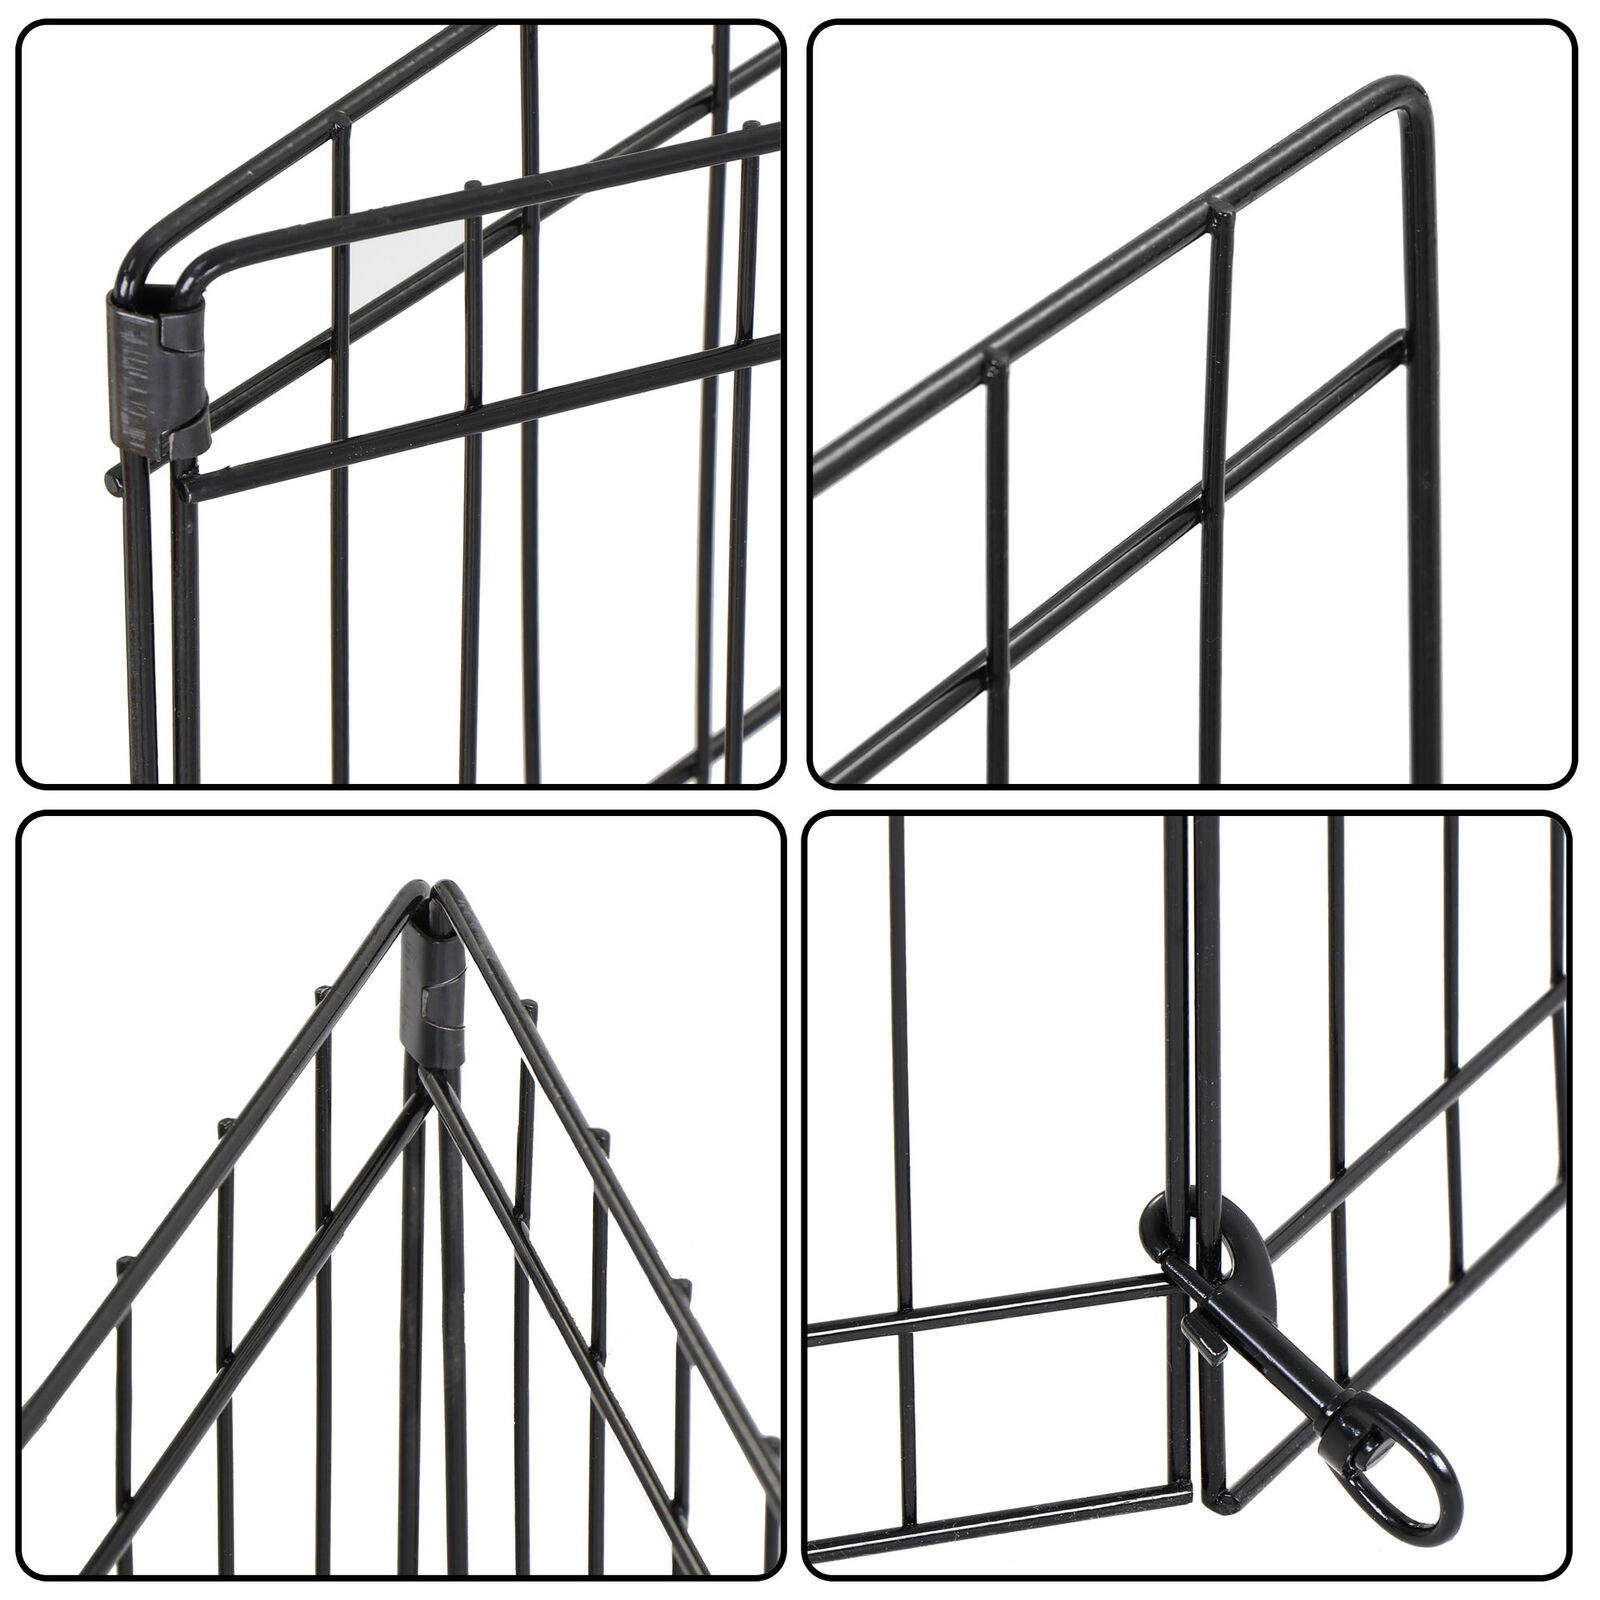 2PCS 24 Inch 8 Panels Dog Playpen Tall Large Crate Fence Pet Play Pen Cage Dog Supplies